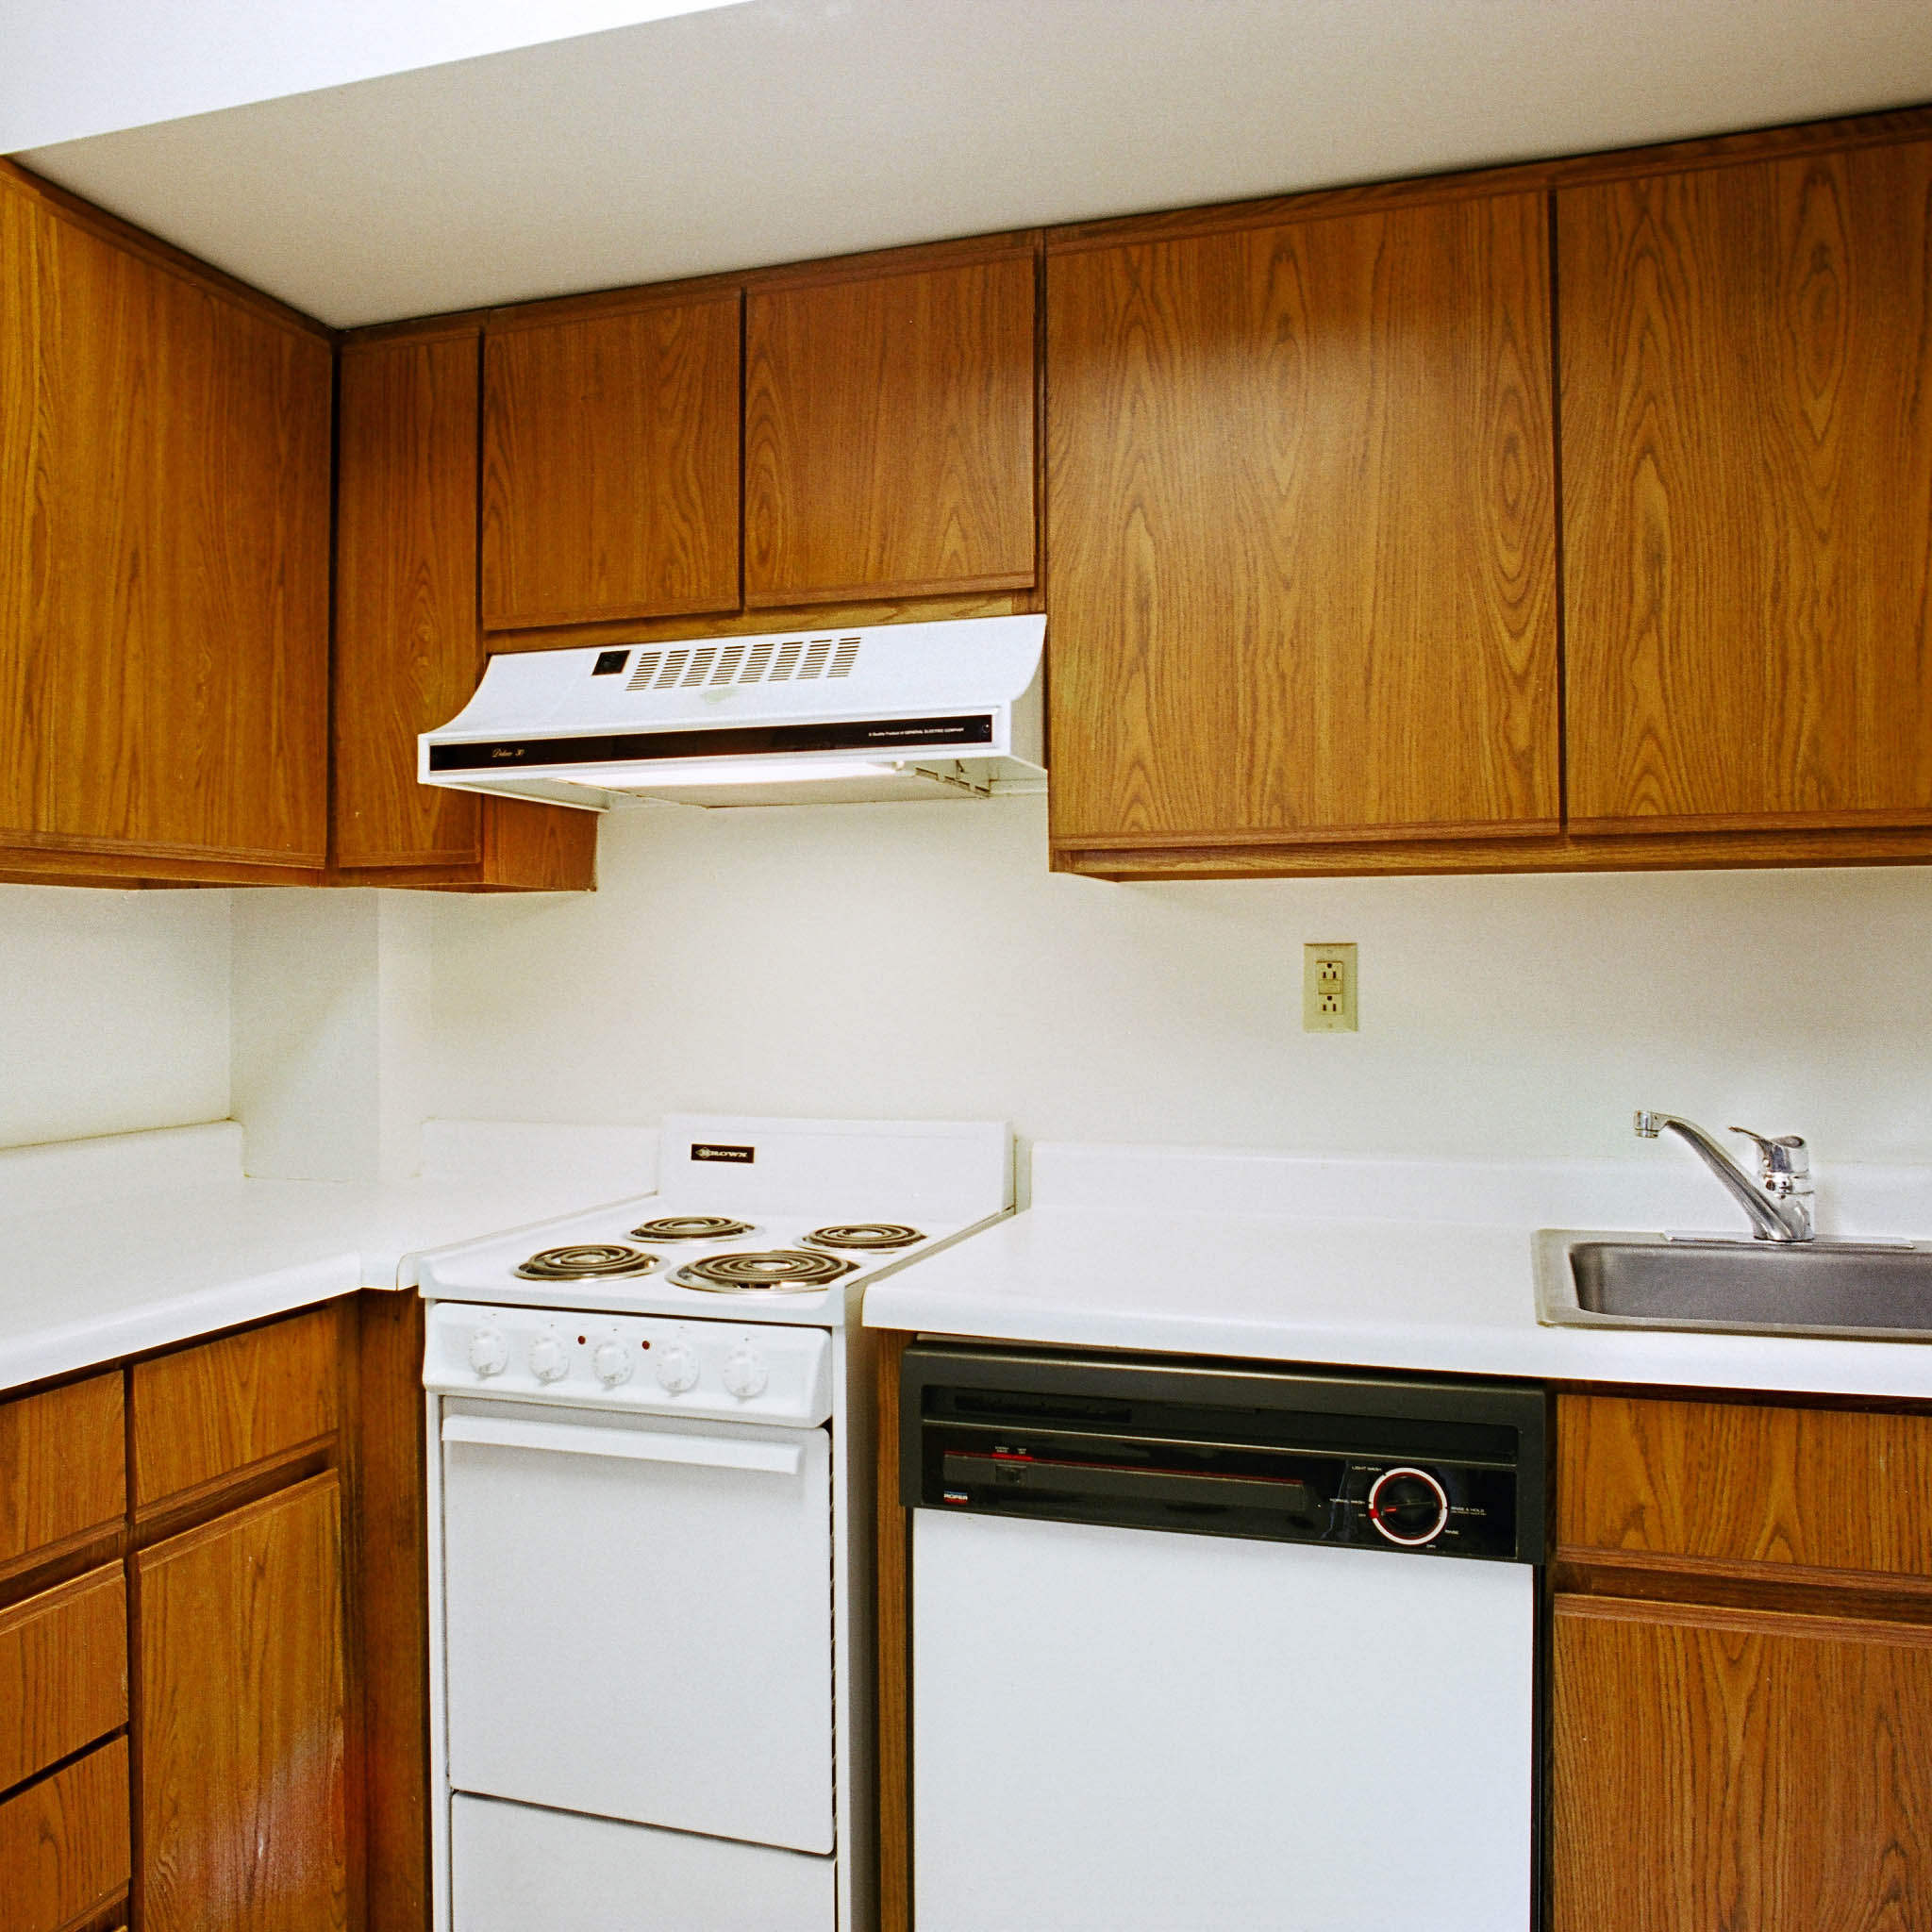 interior of 342 S. Highland Ave, Apt. 13B 3